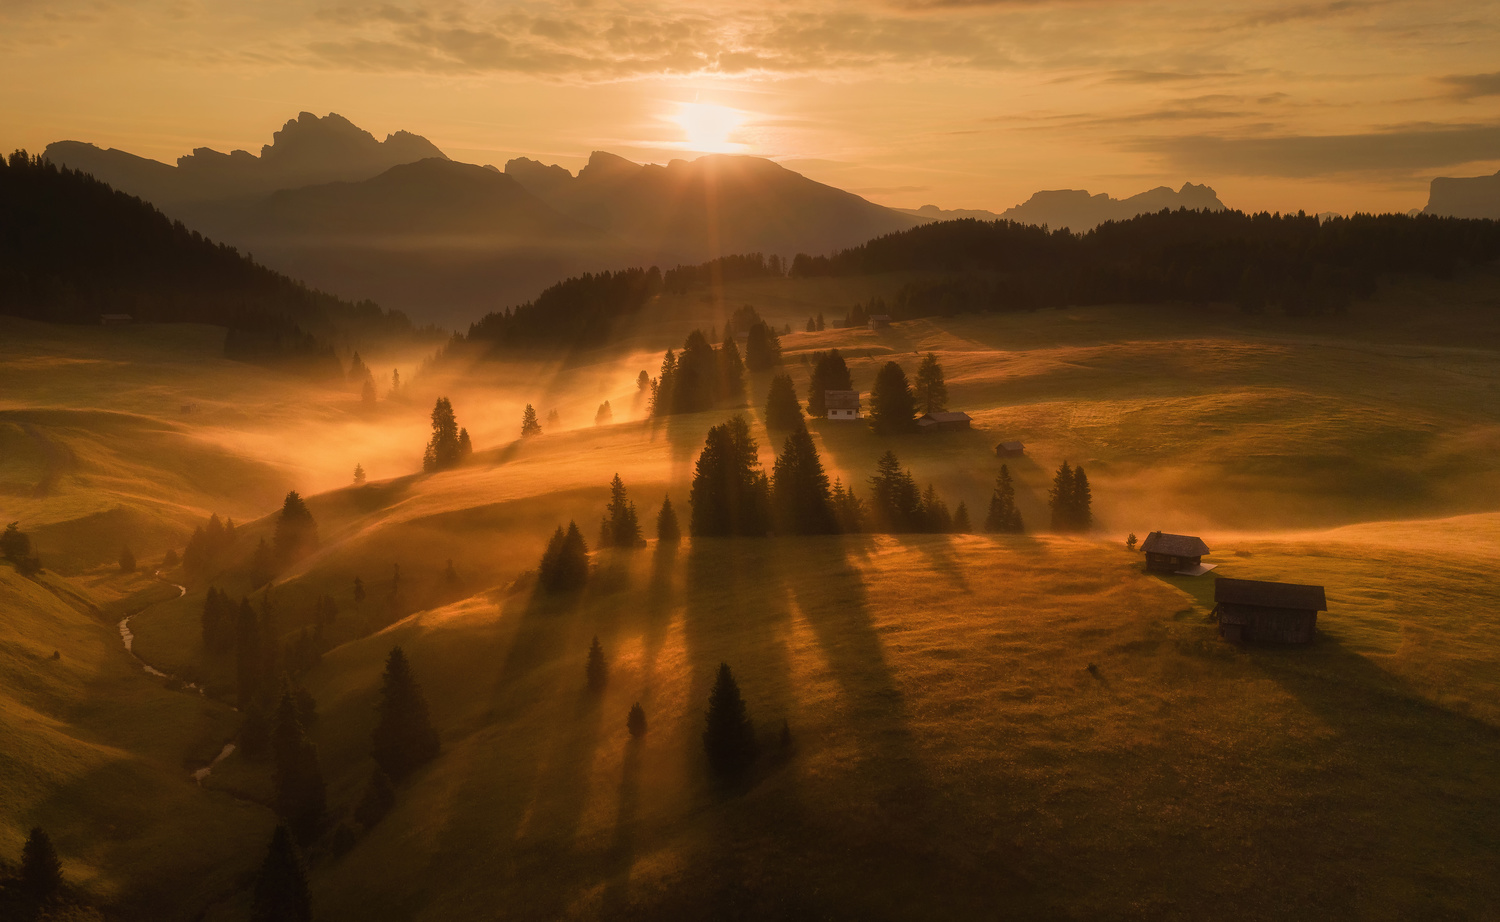 Foggy lines by Ales Krivec